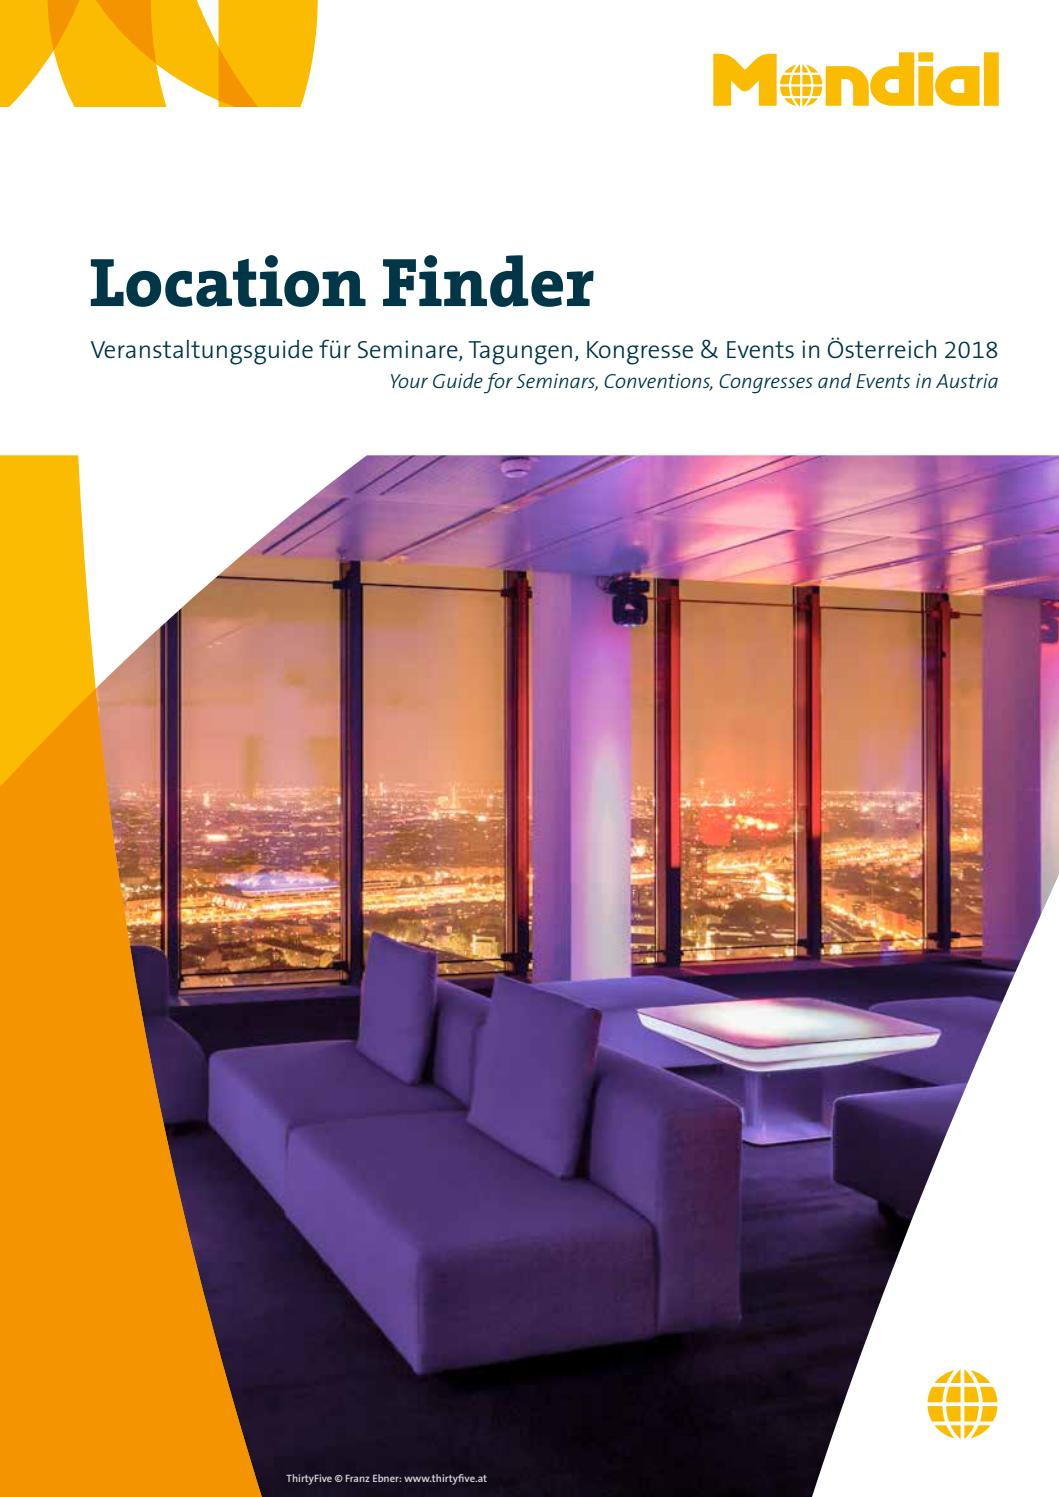 Mondial Location Finder By Mondial Reisen Issuu